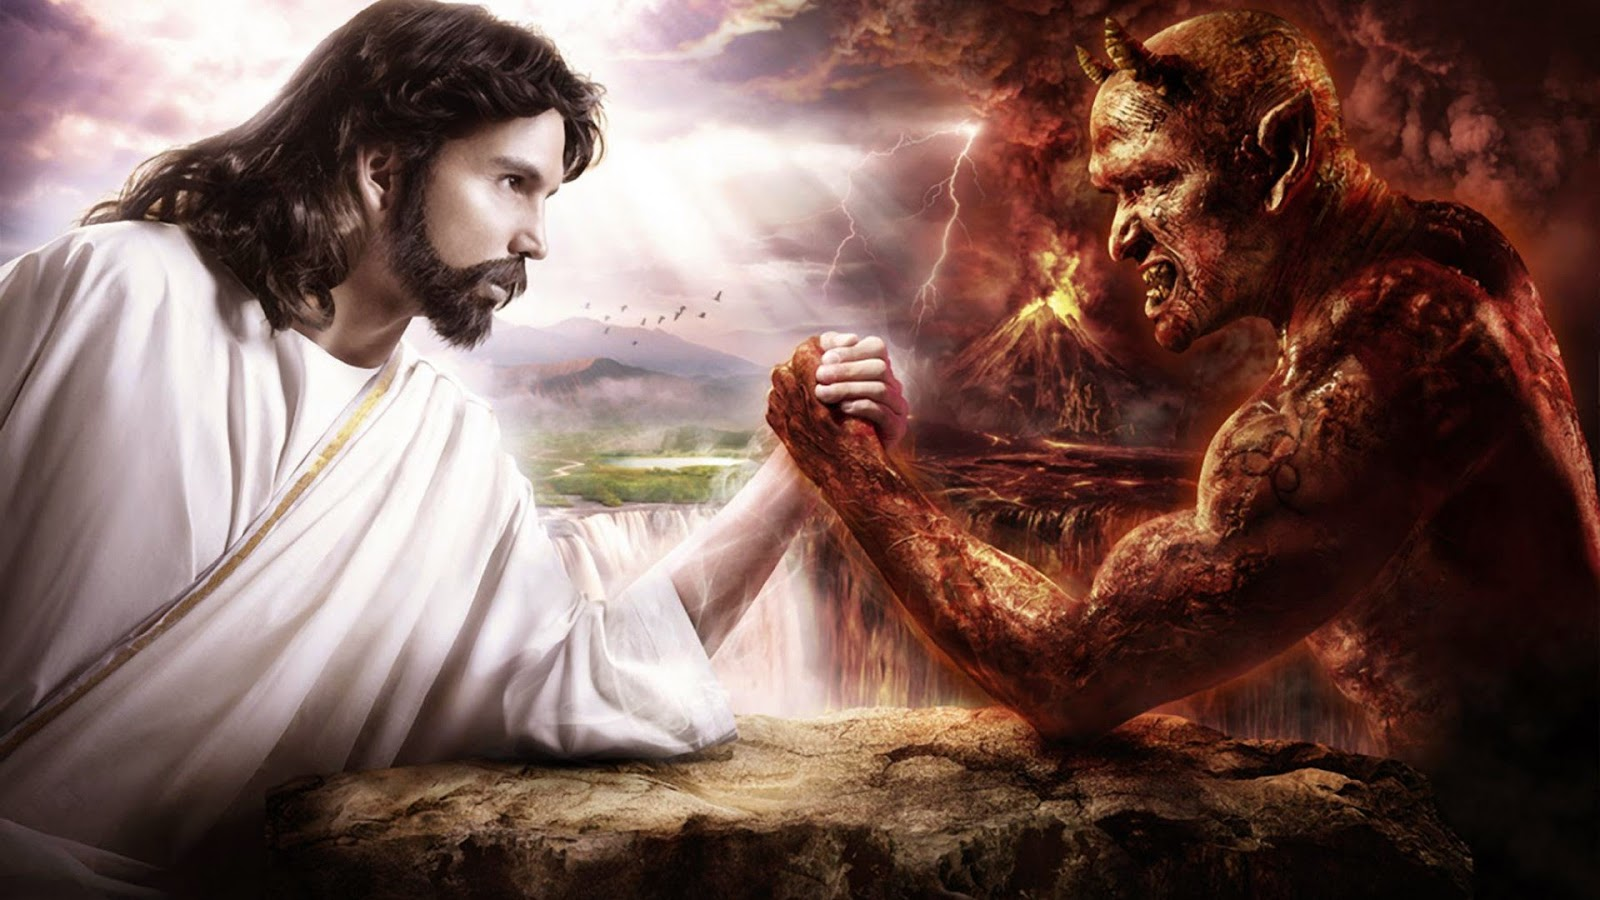 Rants Within the Undead God: Clash of Worldviews: God and the Devil